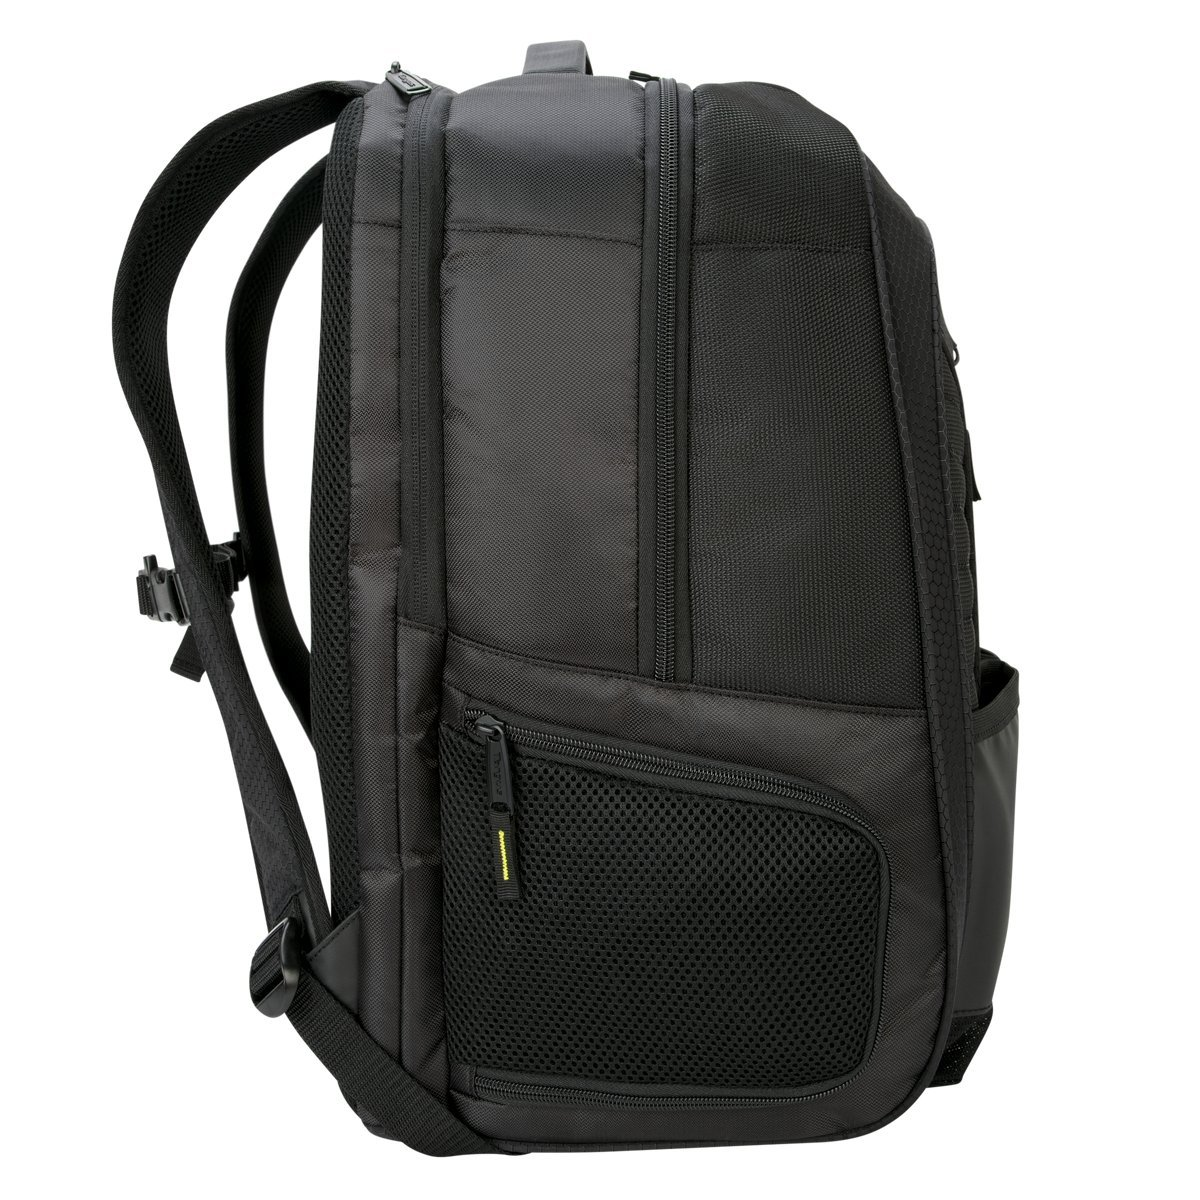 fb7d178237 Amazon.com  Targus - 15.6 Work + Play Racquets Backpack  Computers    Accessories